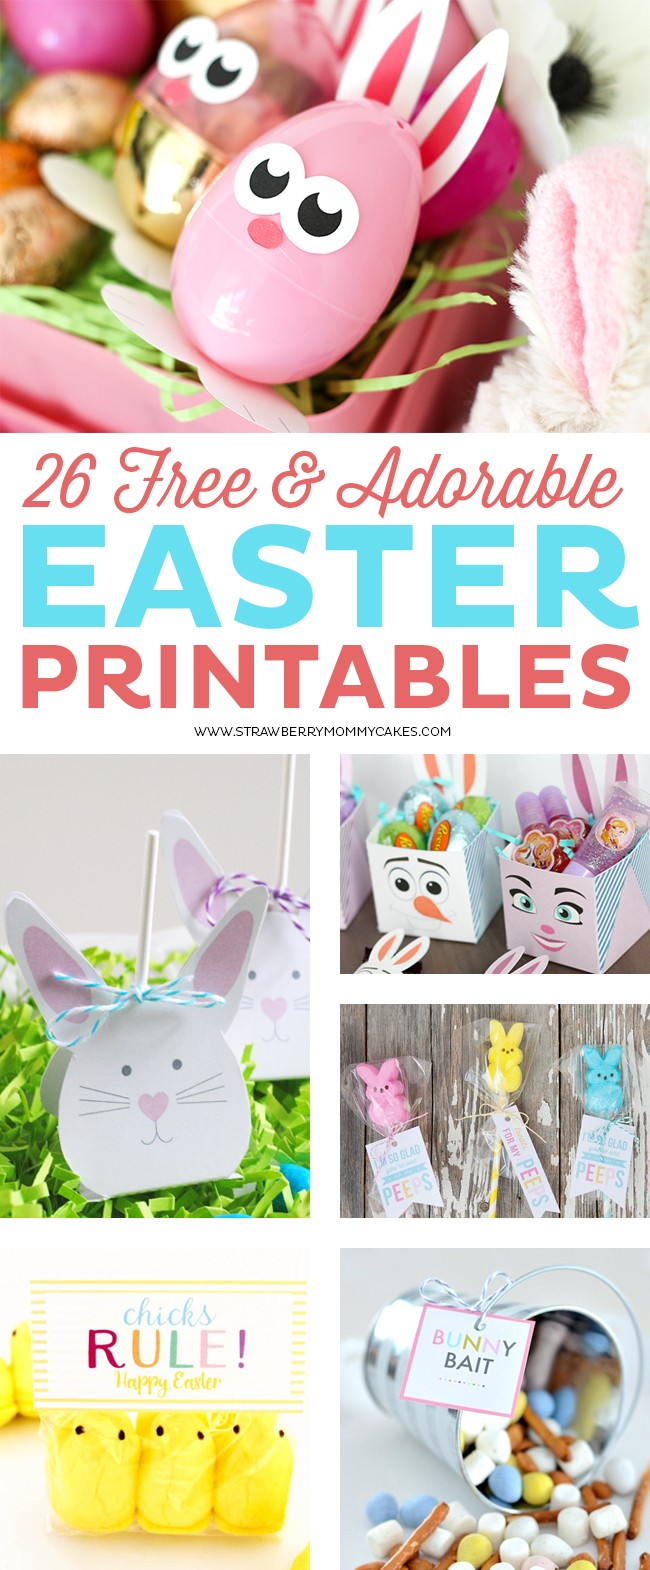 26 FREE and Adorable Easter Printables